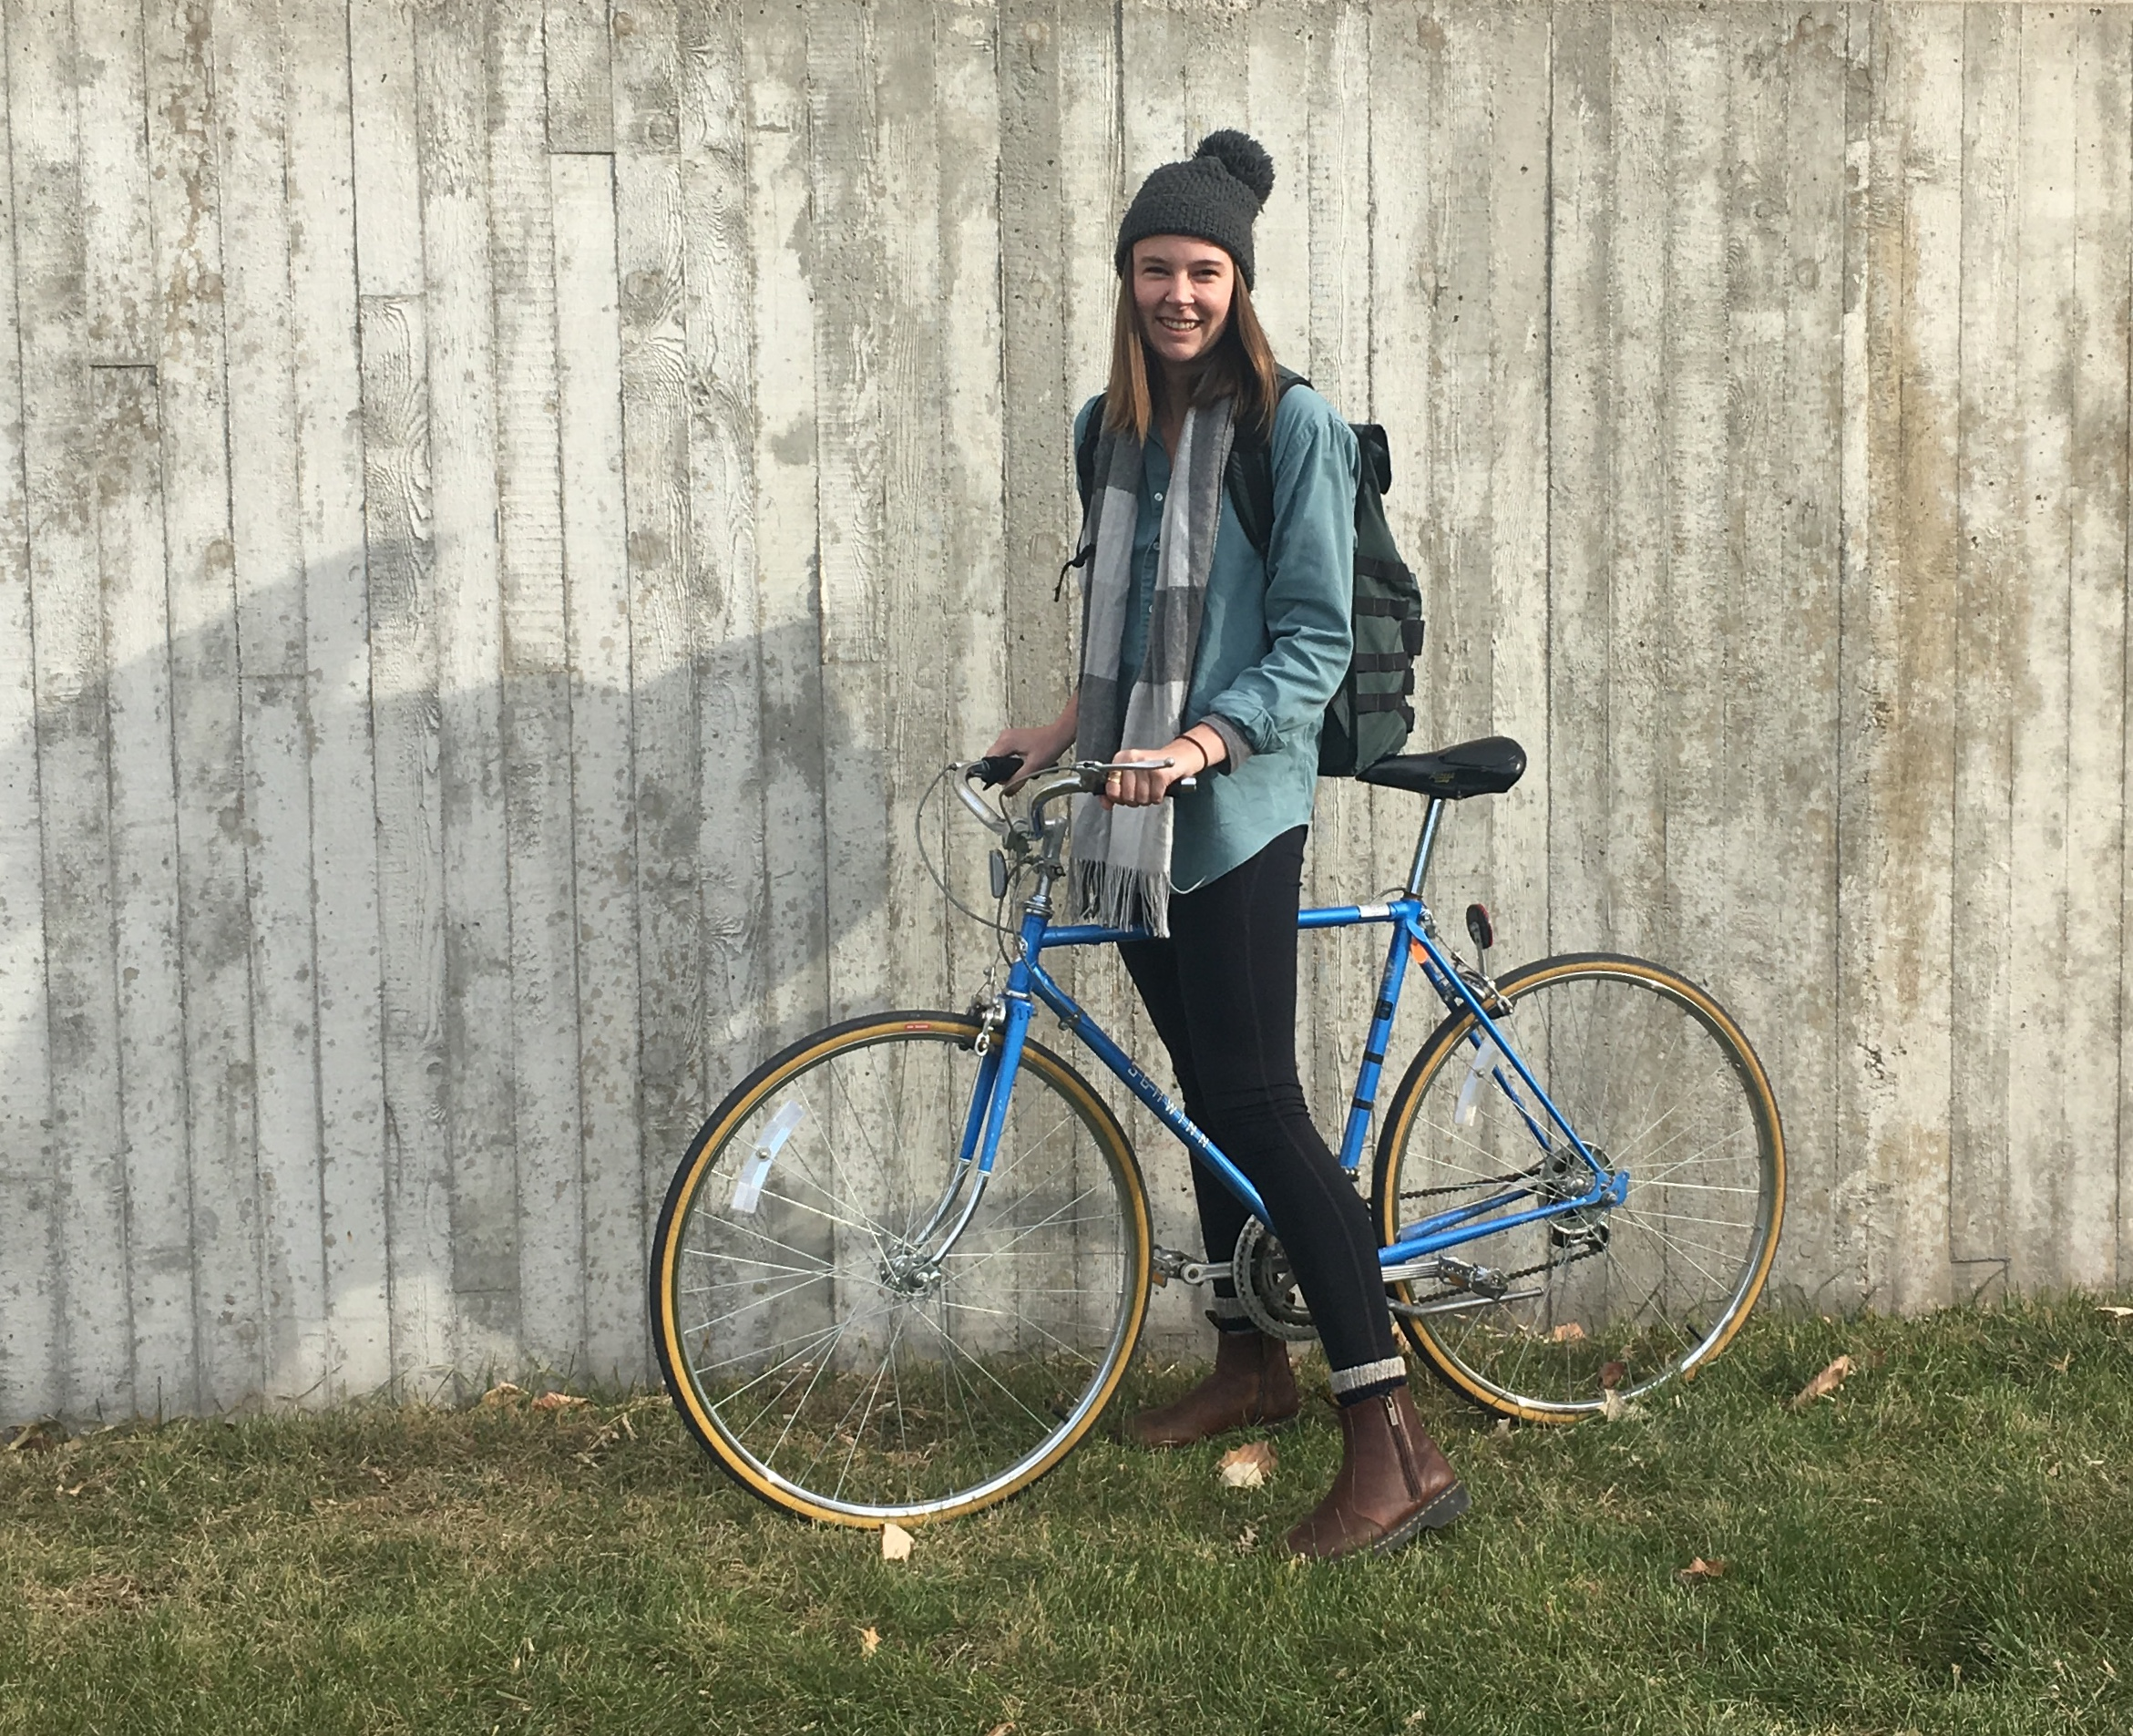 Zoey Mauck with her Liv Avail road bike